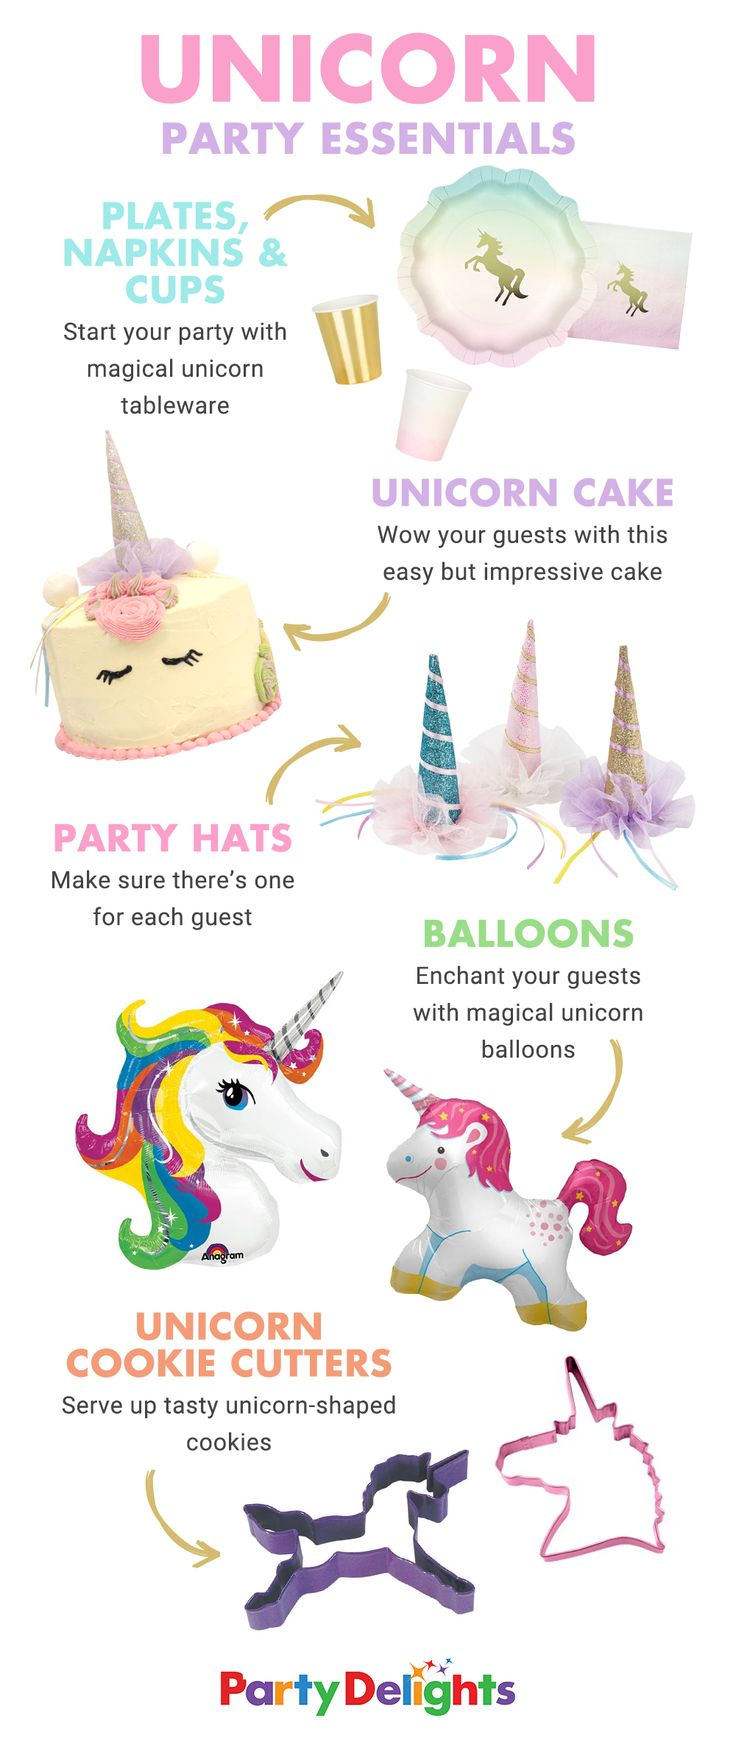 Big happy birthday badges party products party delights - Planning A Unicorn Birthday Party Here S Our Round Up Of The Unicorn Party Essentials